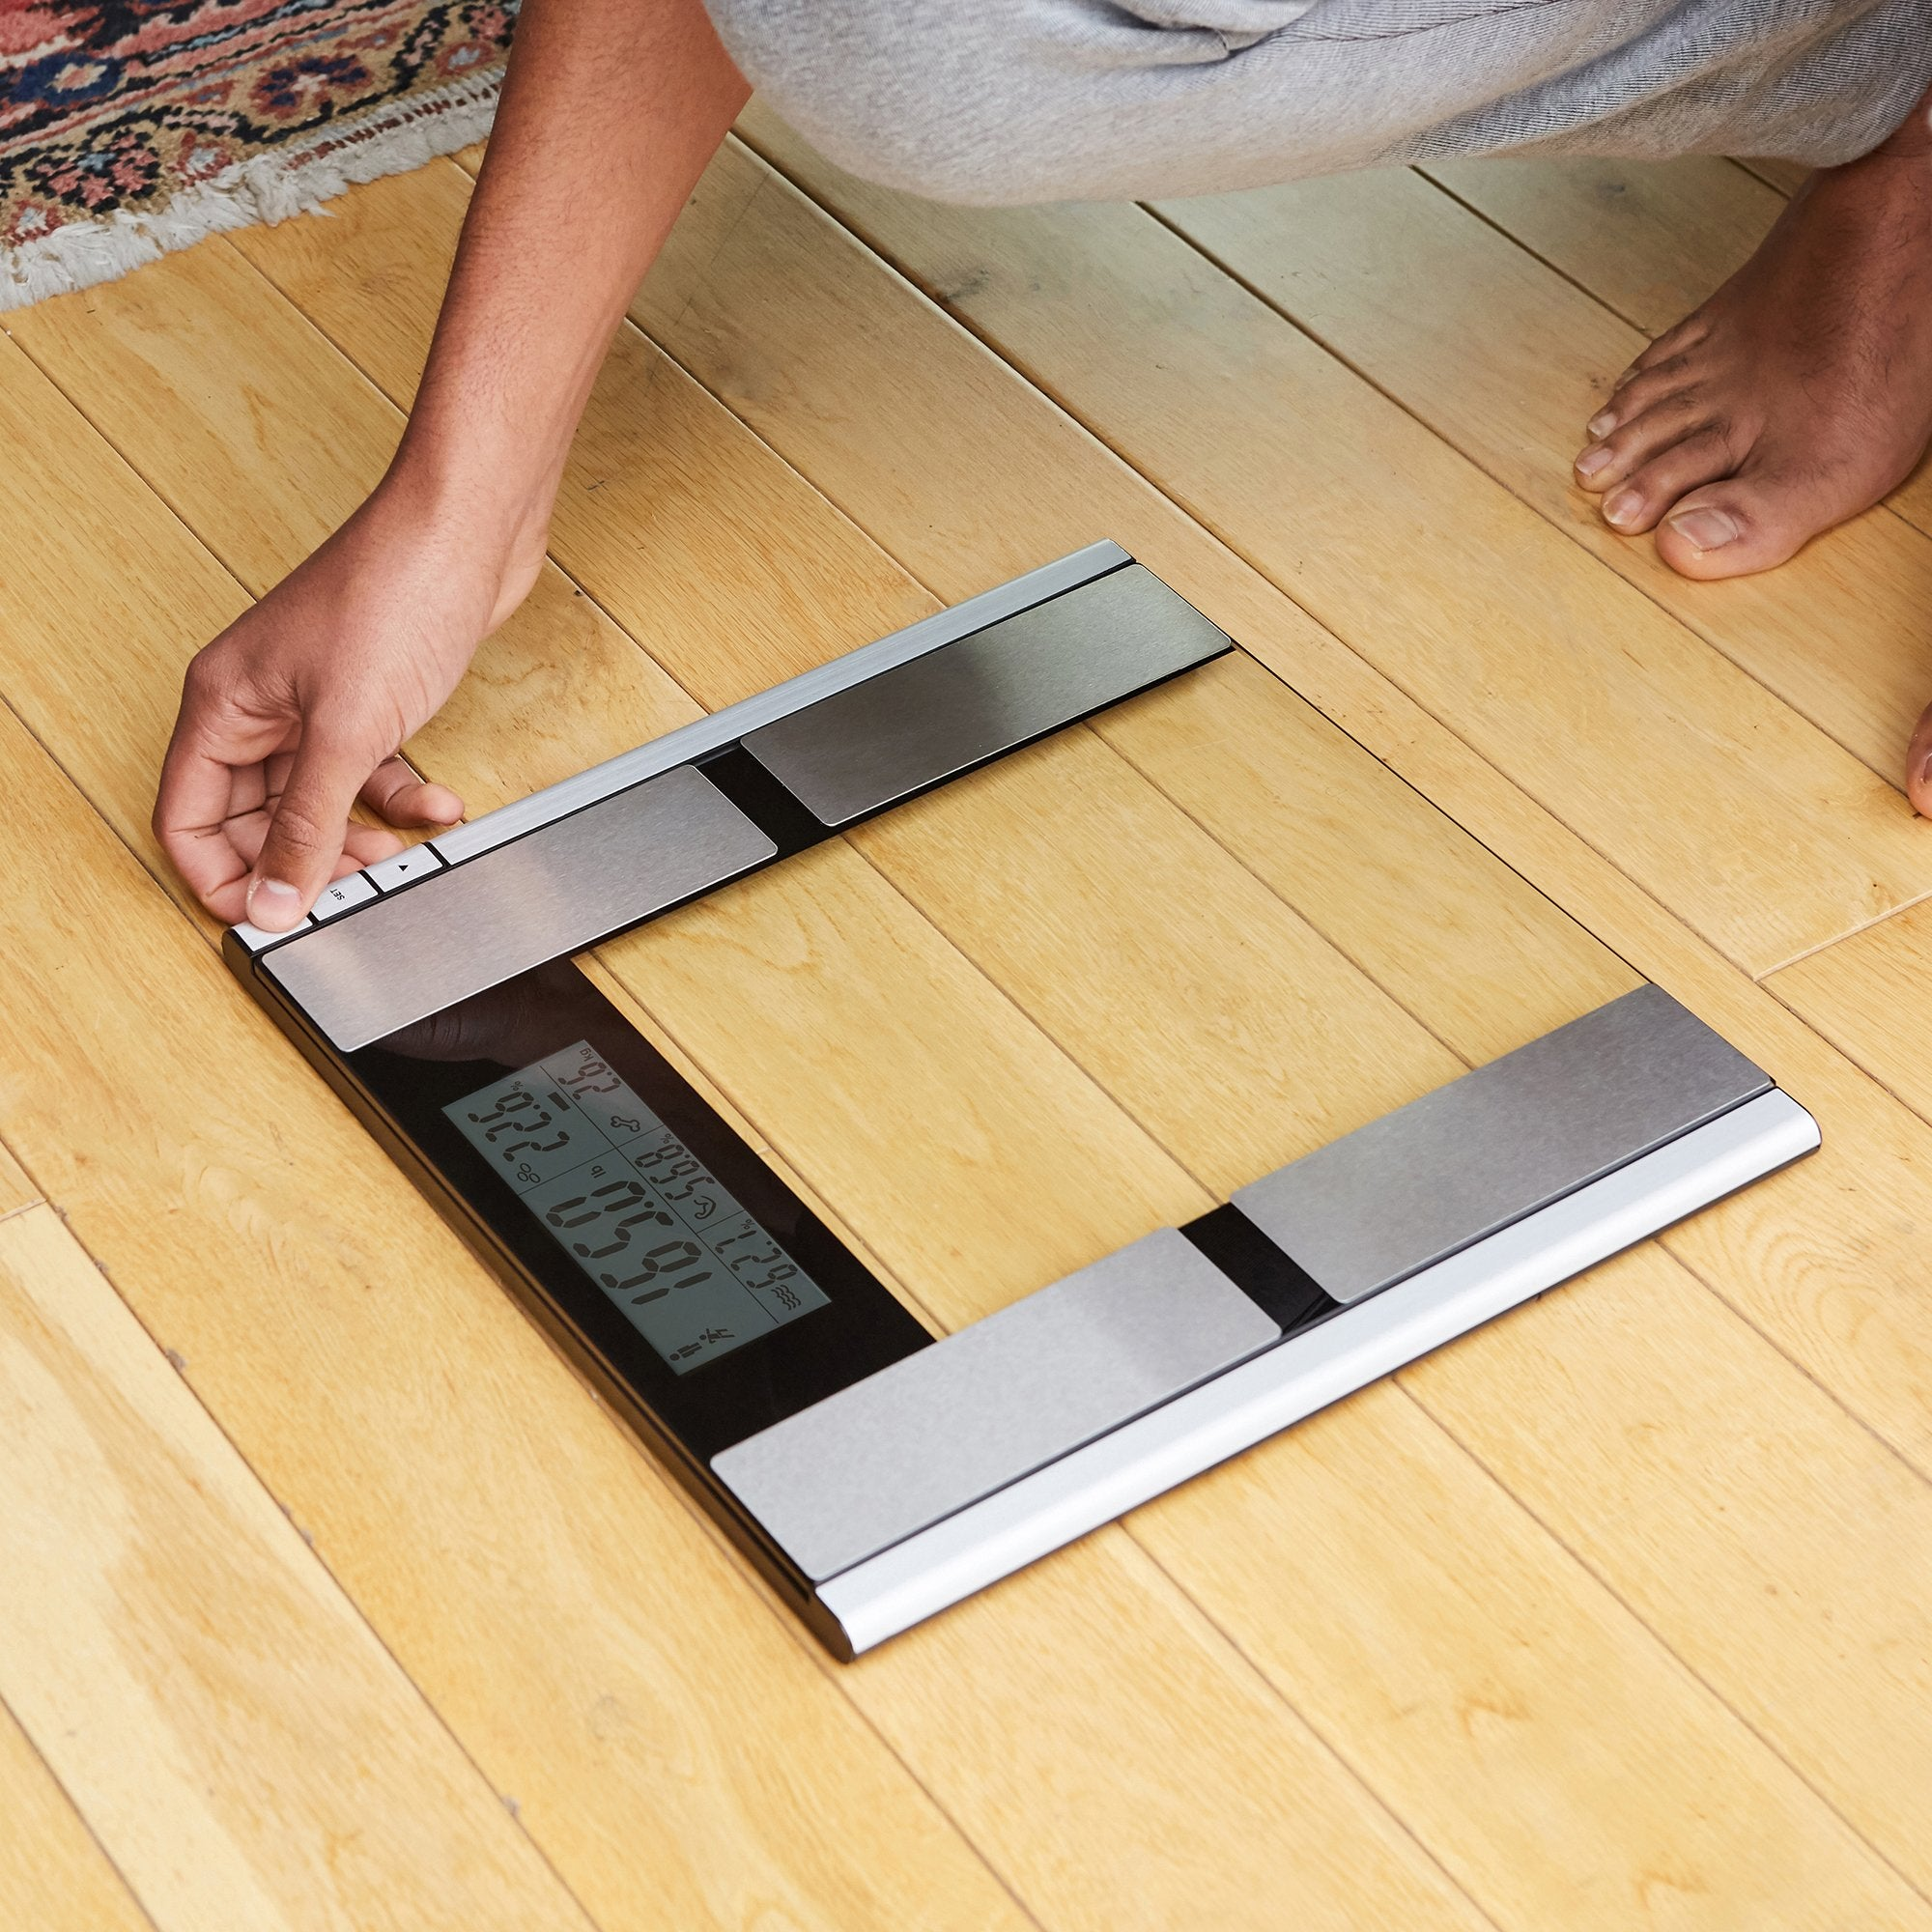 Form Fit | Digital Scale and Body Analyzer - Vitagoods